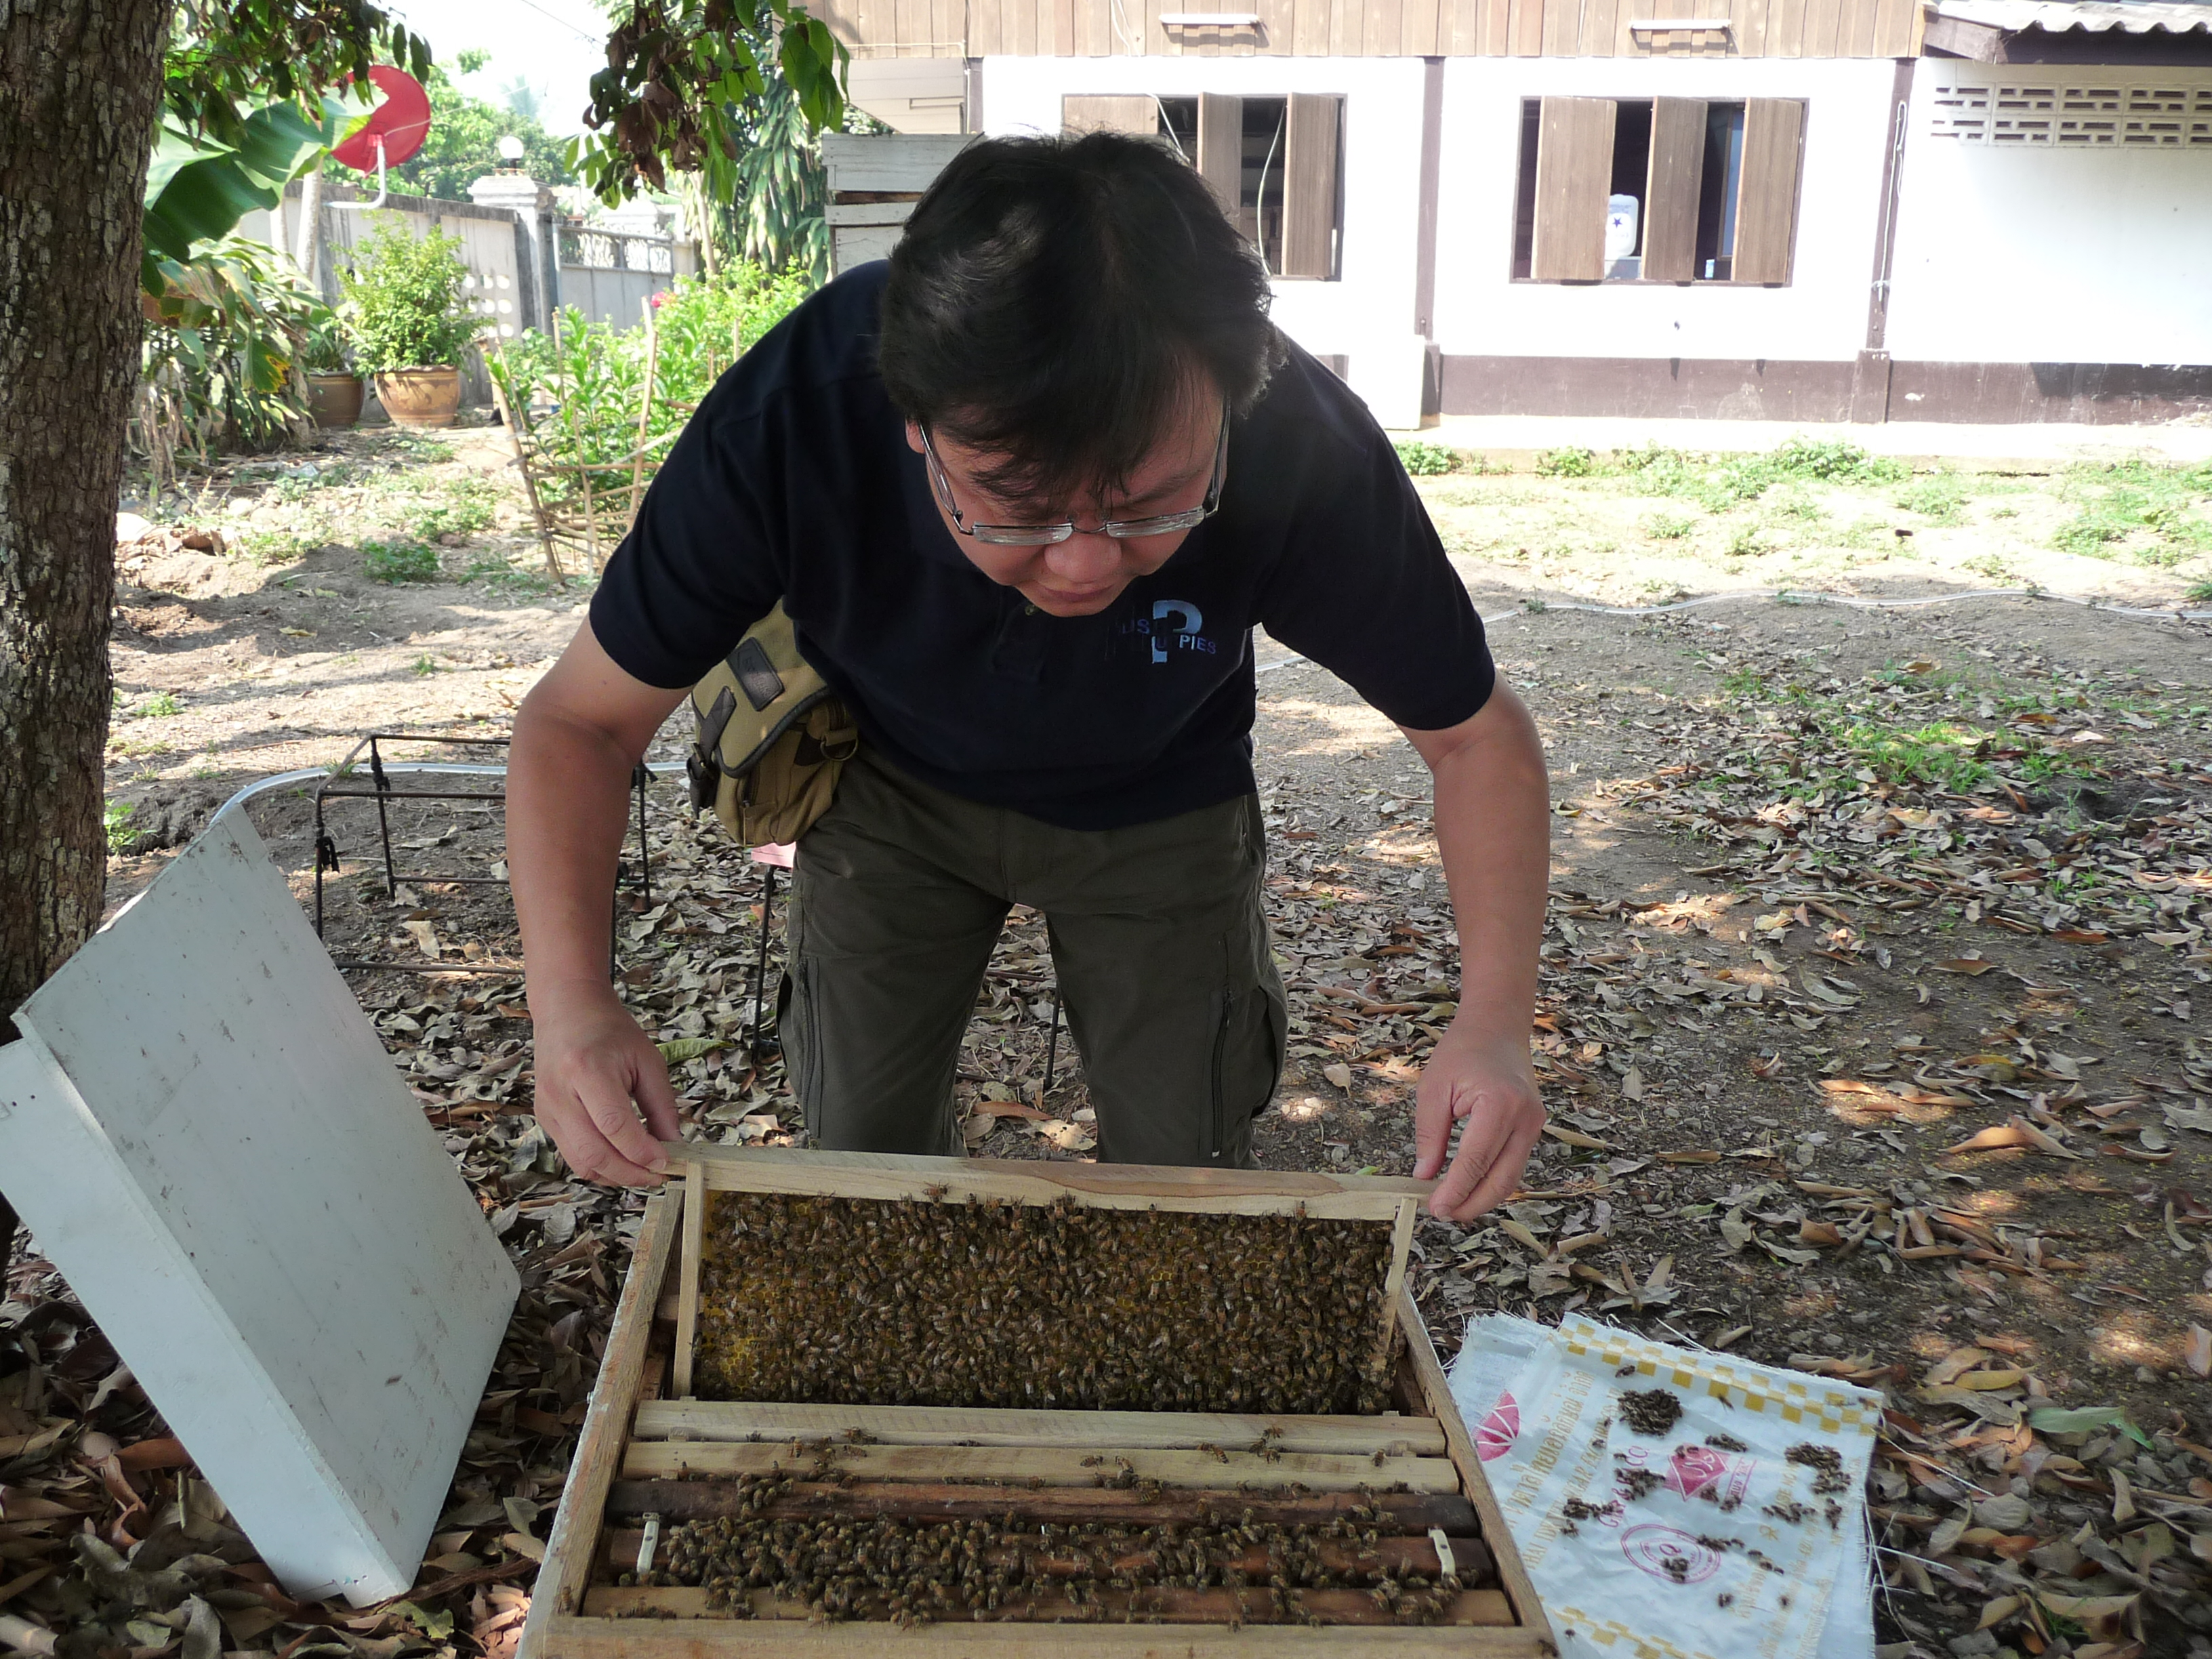 Arranging them back in place before closing up the hive